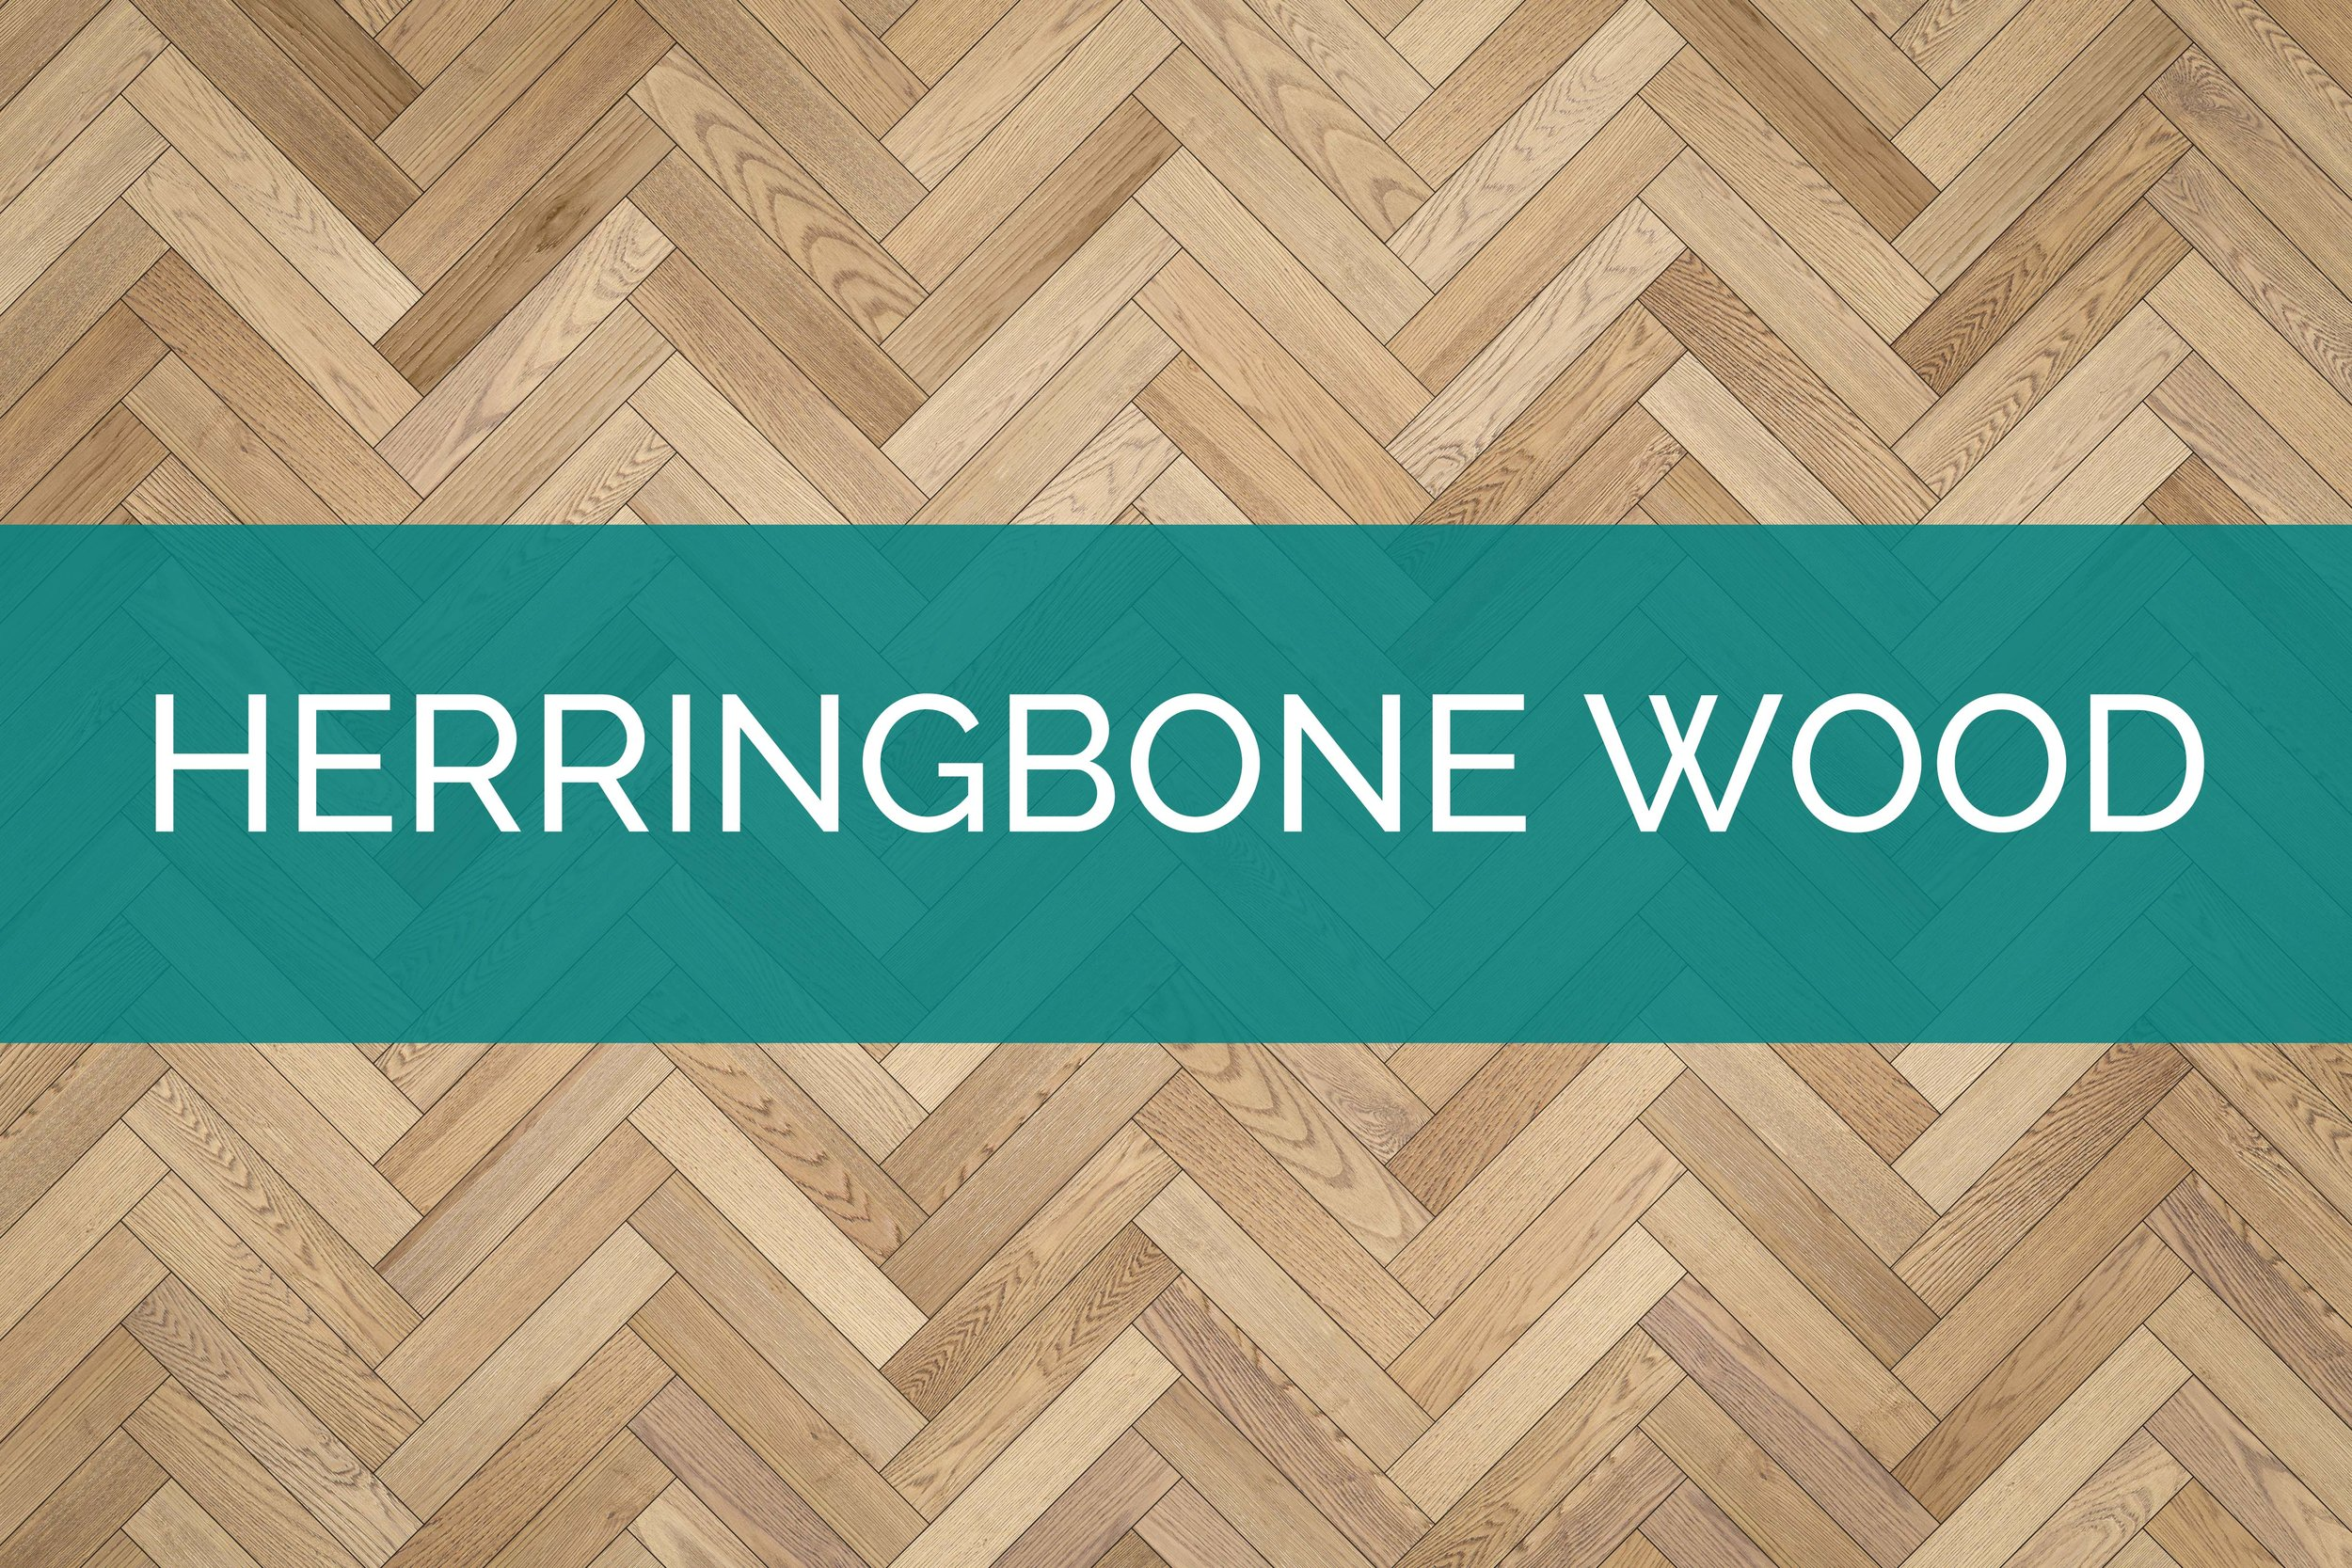 Herringbone Wood photo booth Backdrop.jpg